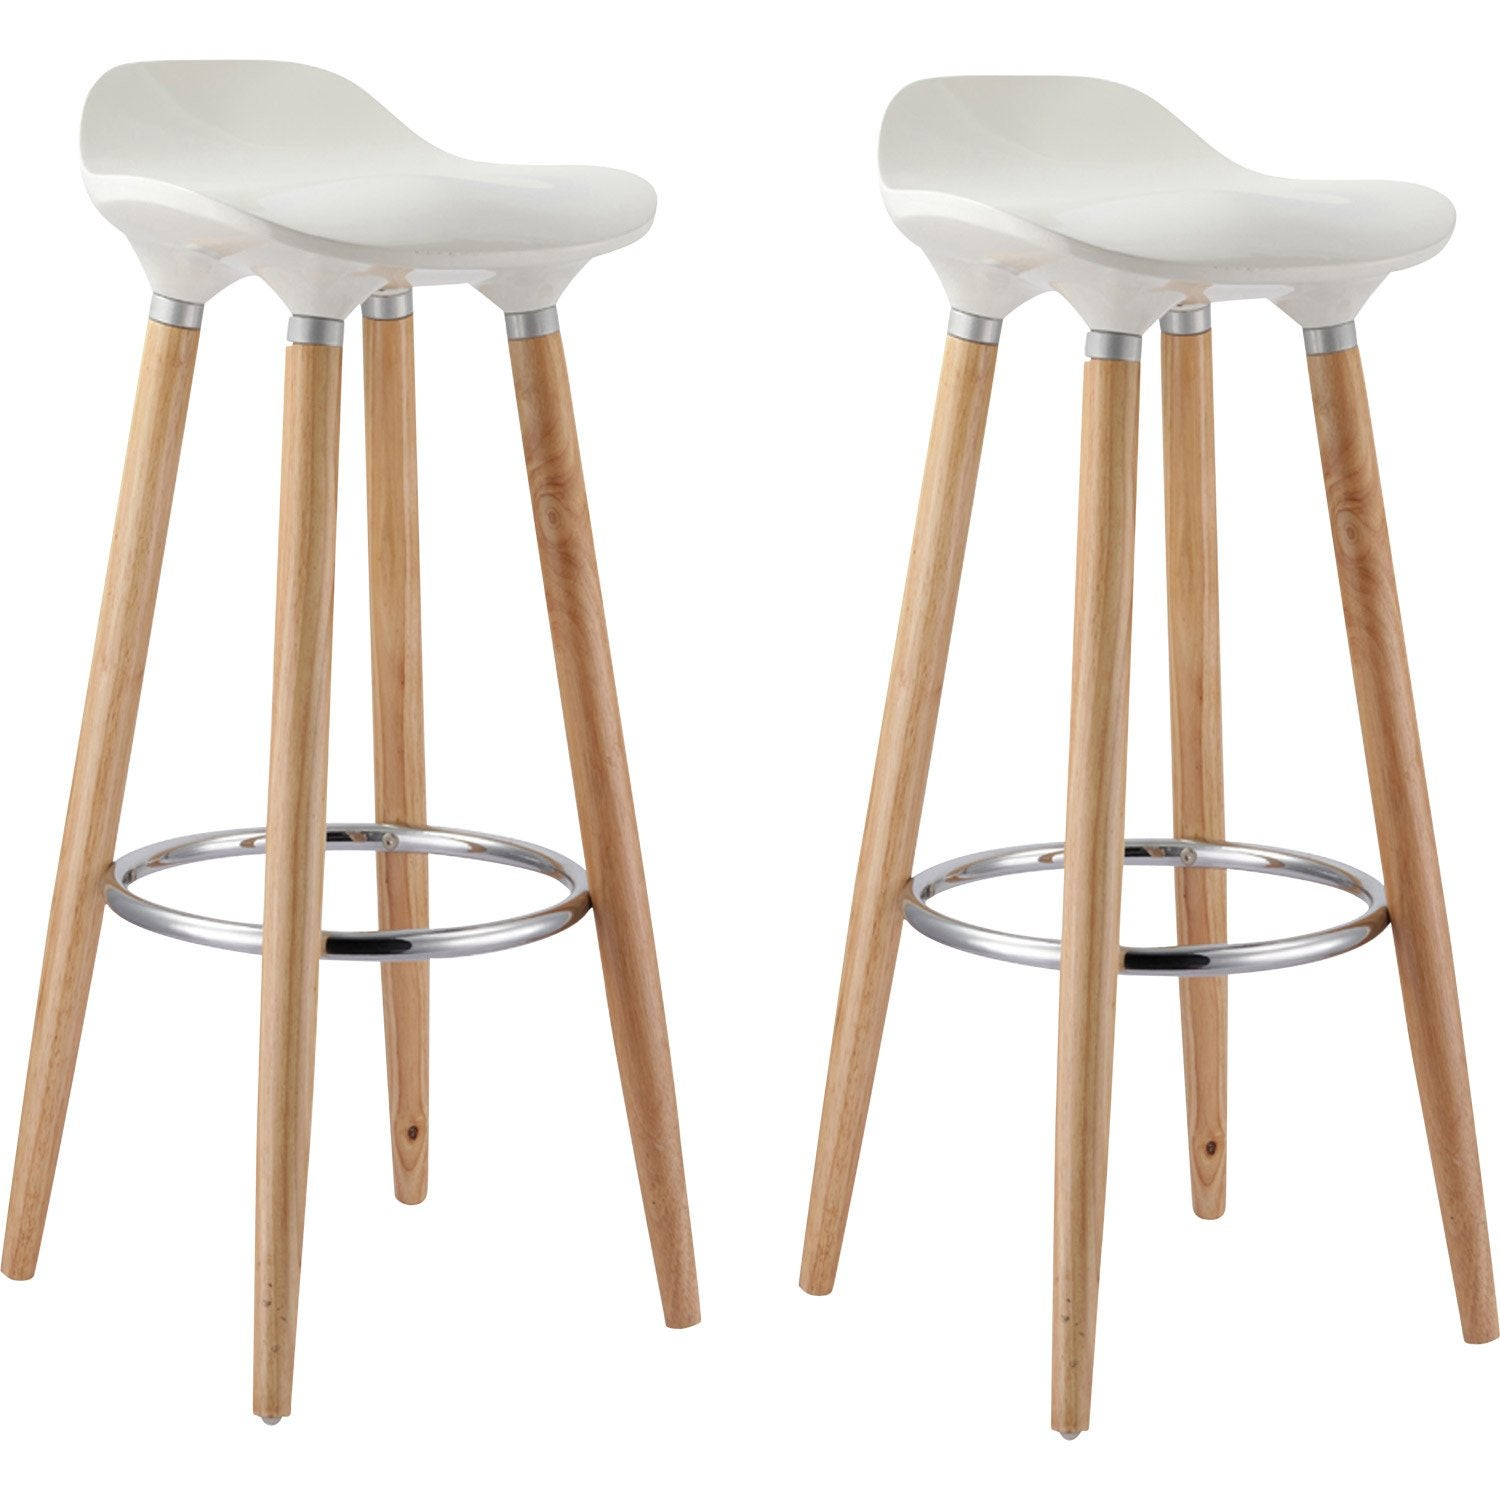 lot de 2 tabourets oslo blanc leroy merlin - Lot De 2 Tabouret De Bar